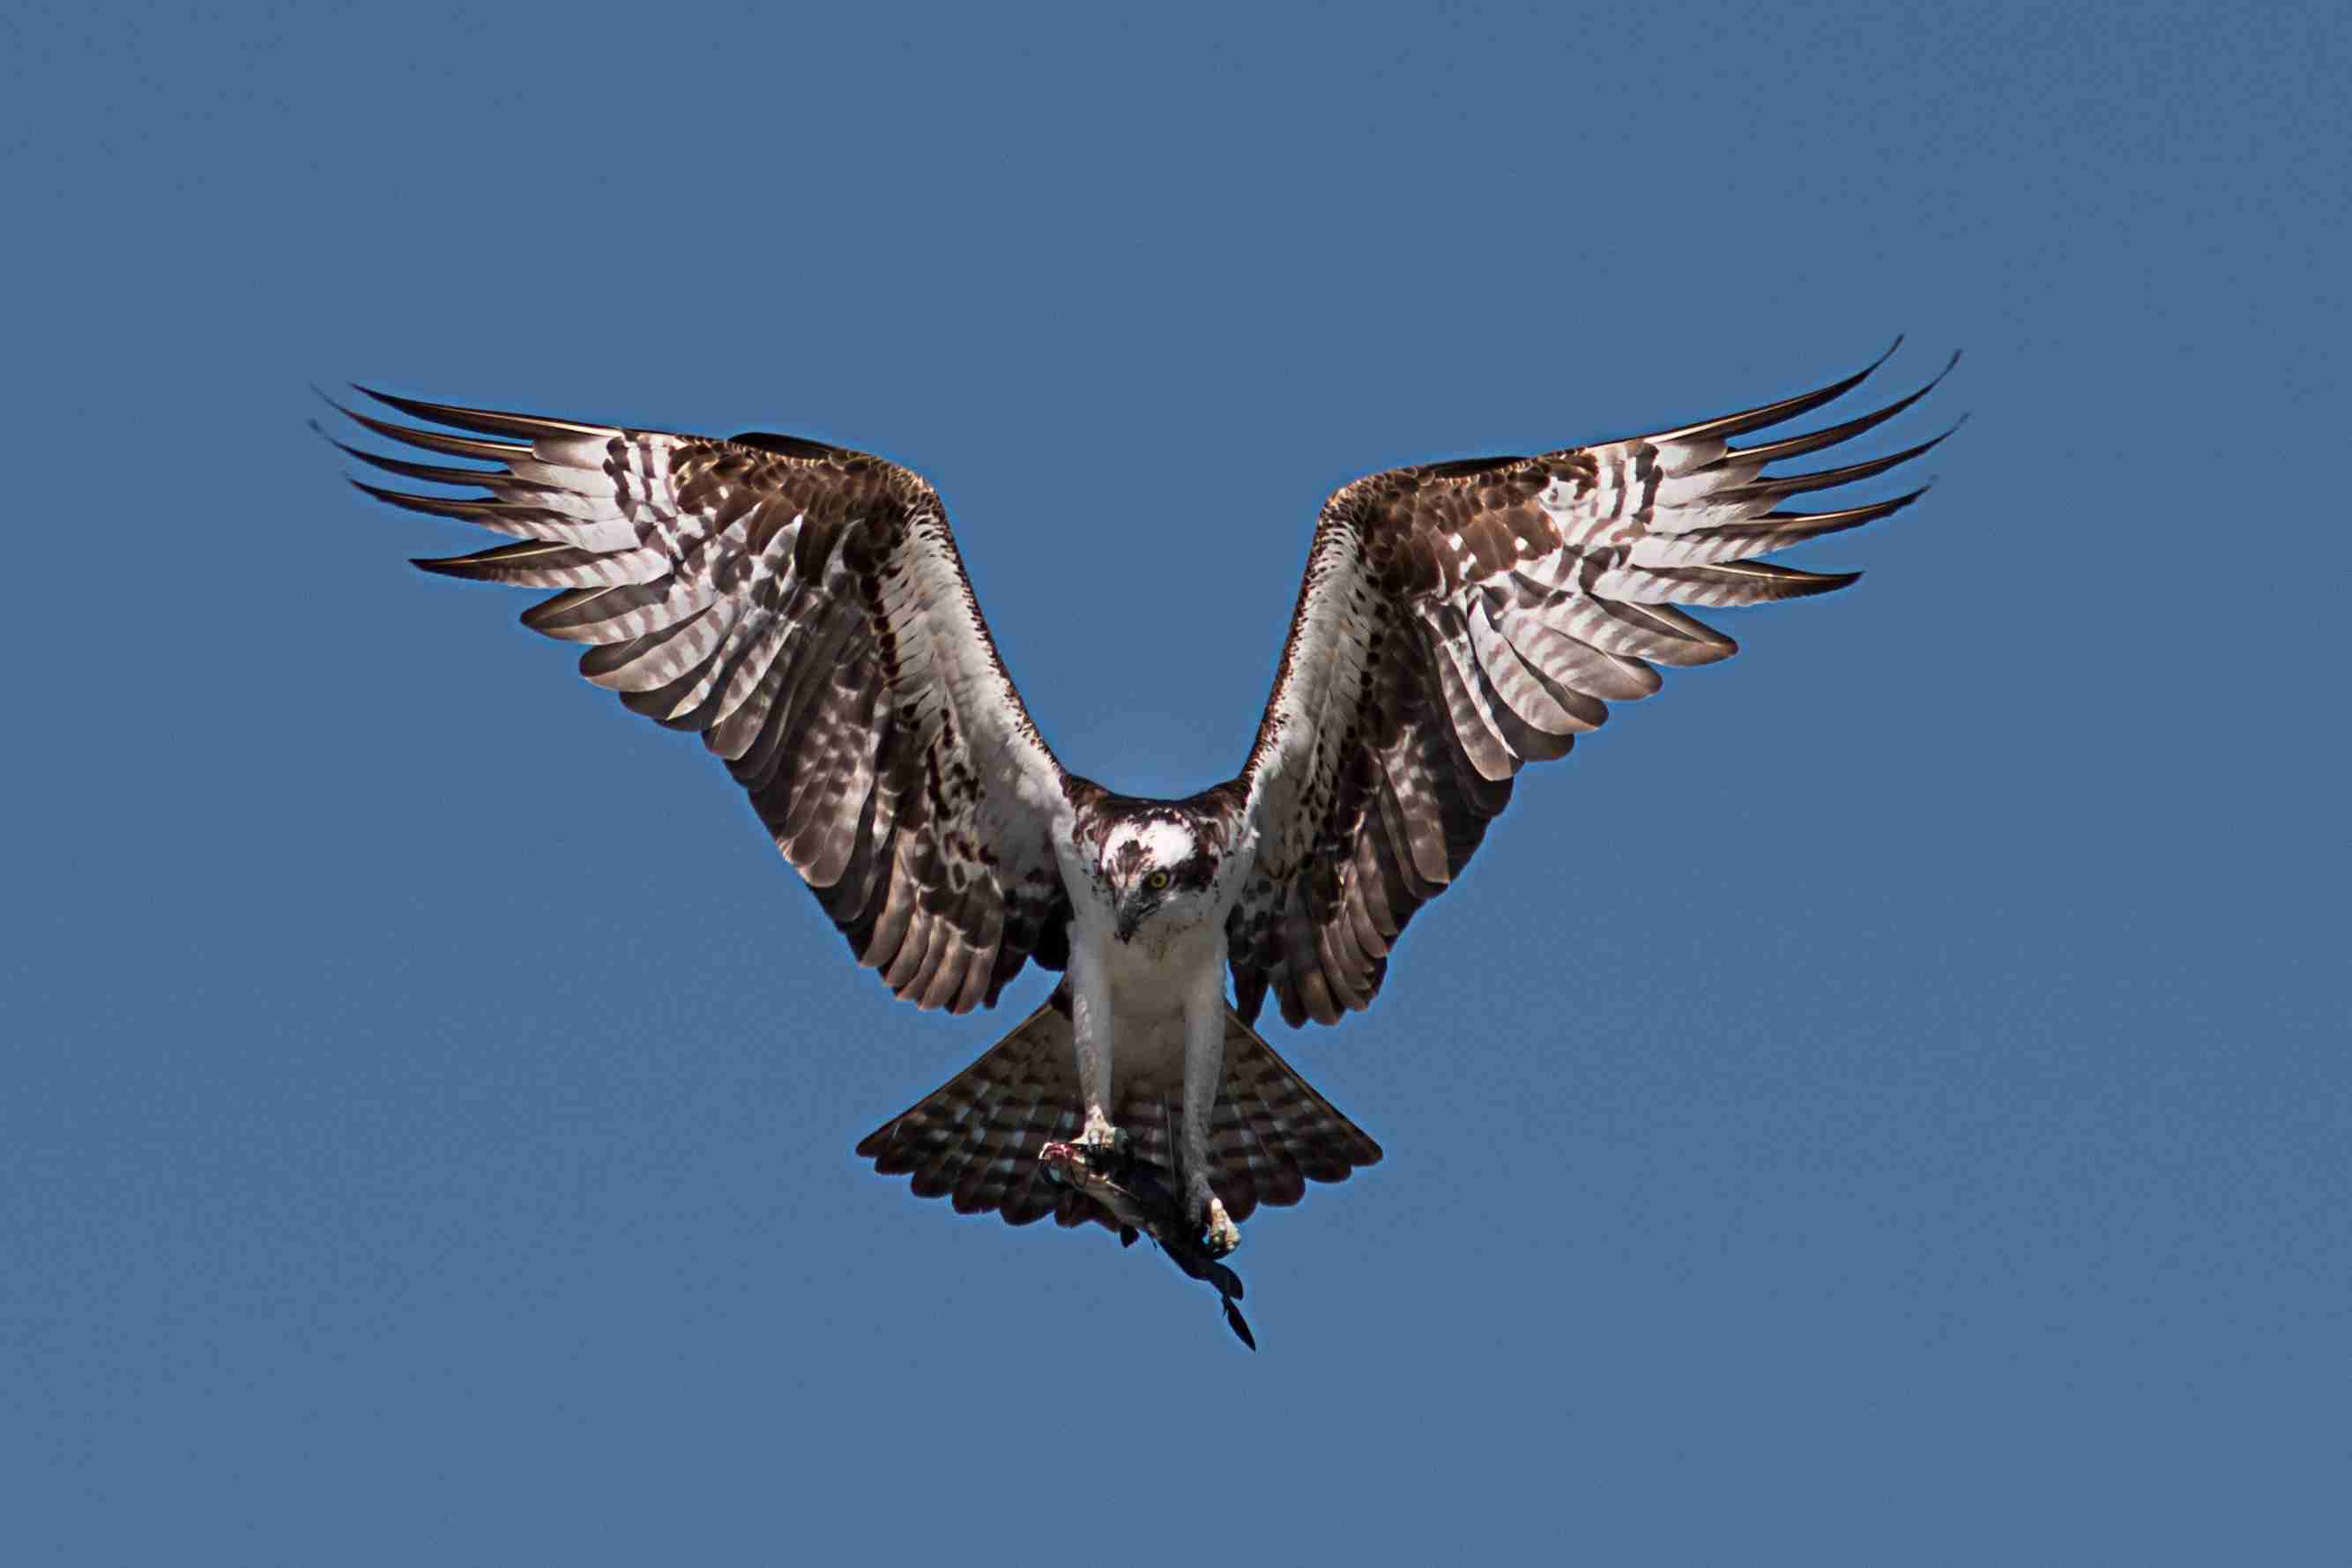 Photograph of an Osprey with wings out carrying a catfish back to the nest.